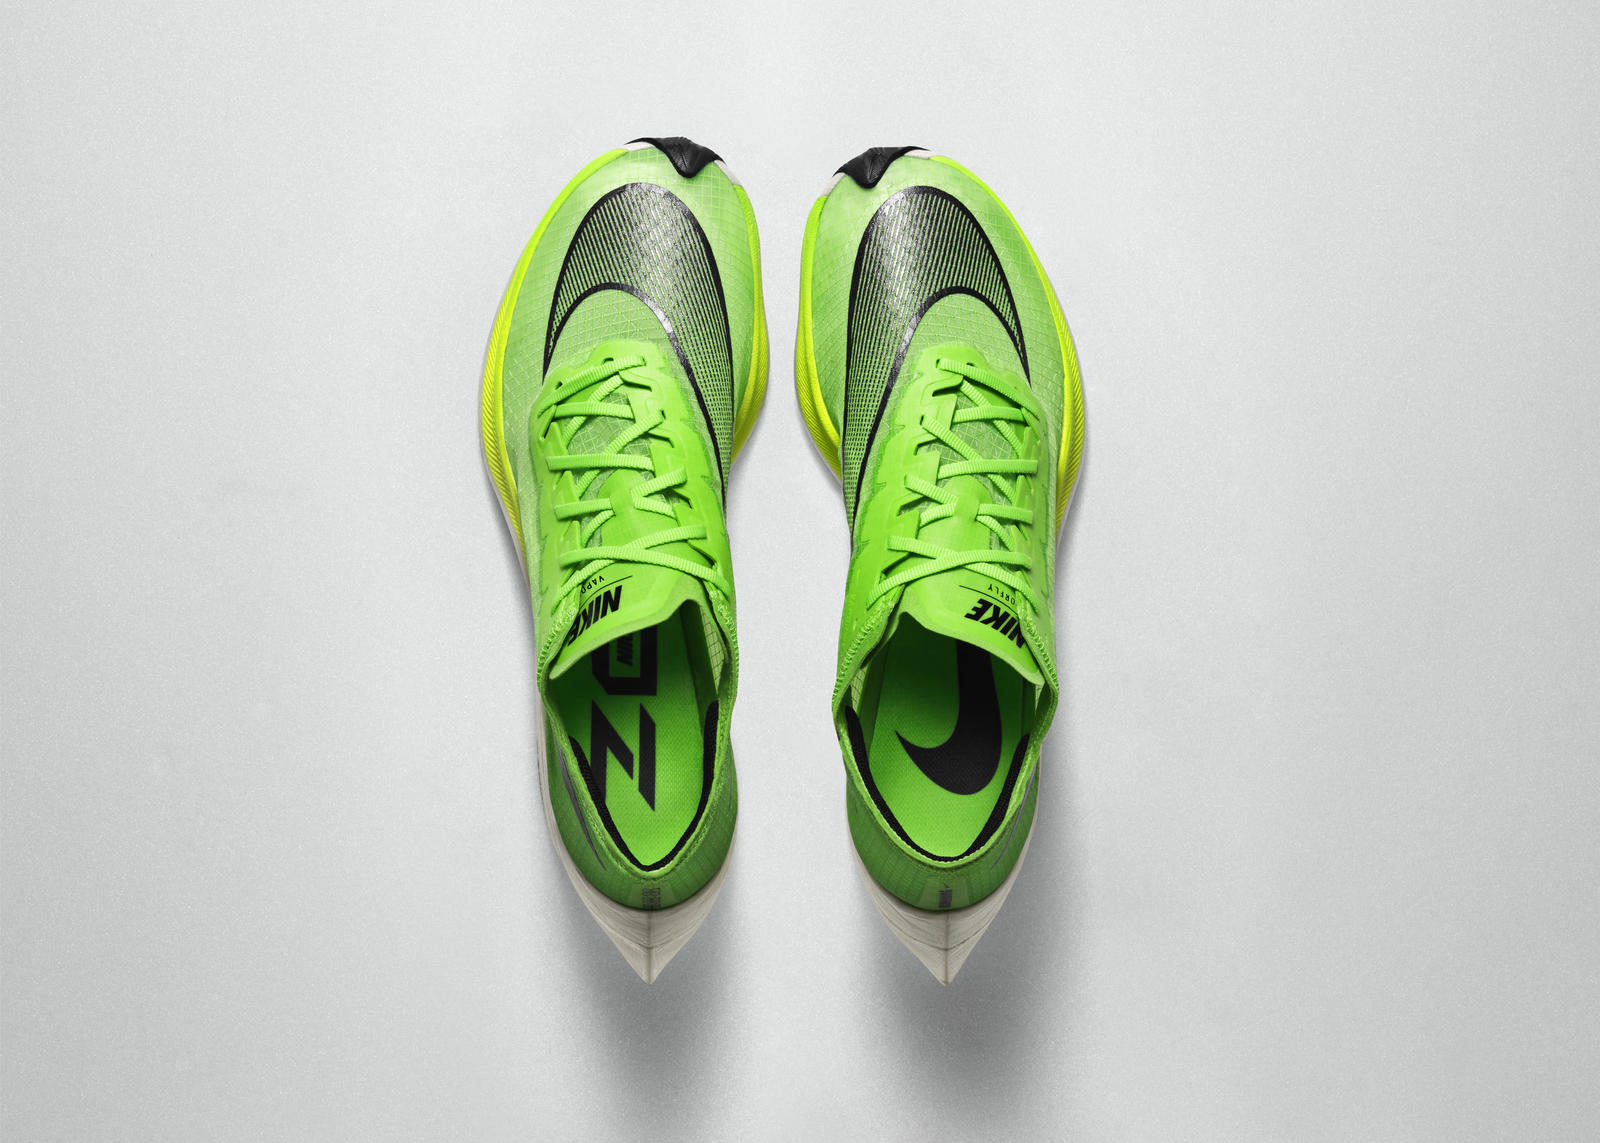 Nike ZoomX Vaporfly Next% Official